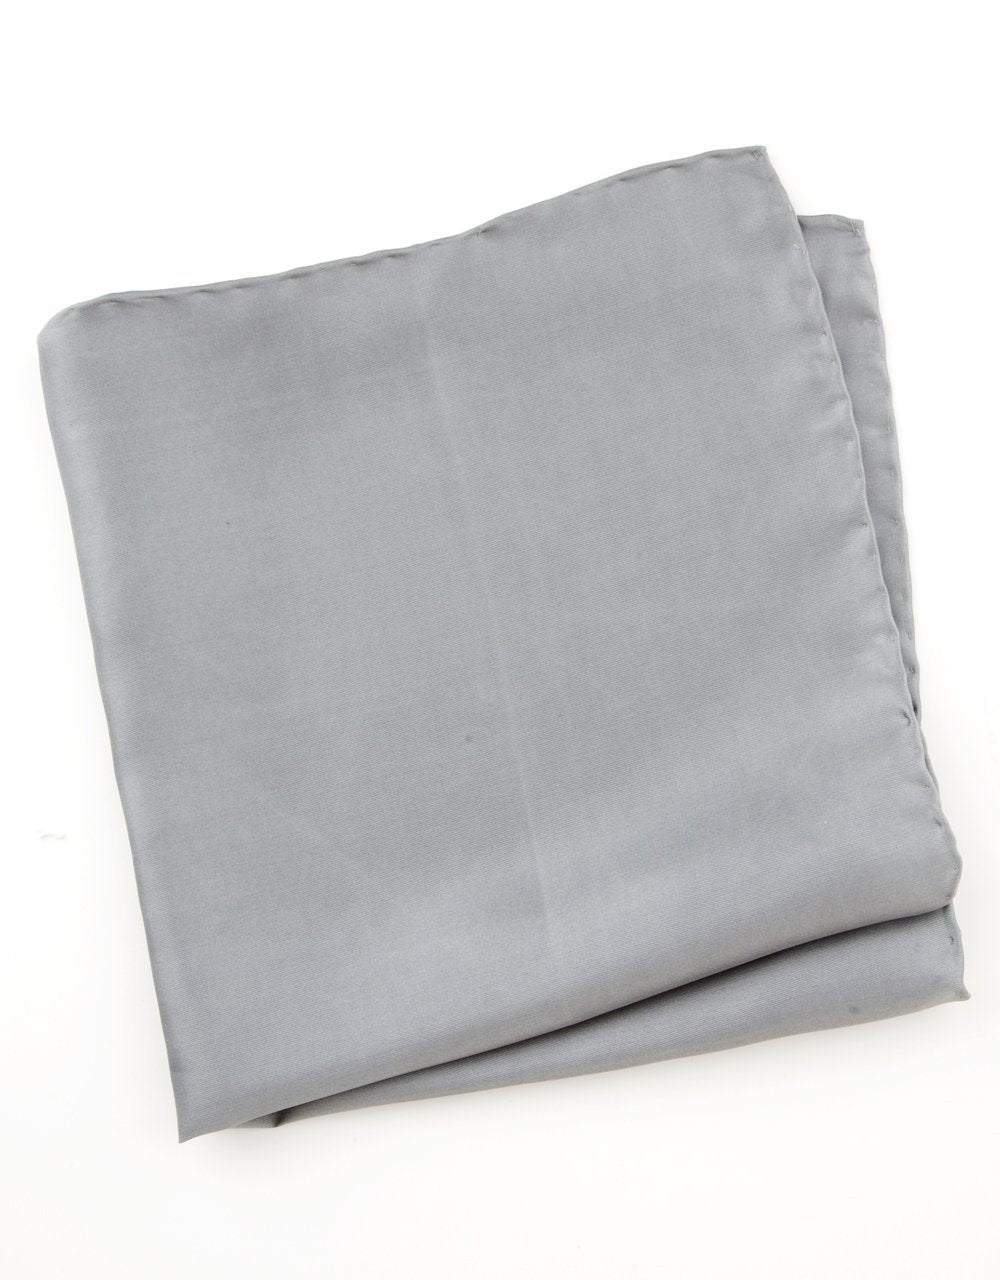 POCKET SQUARE - CHARCOAL